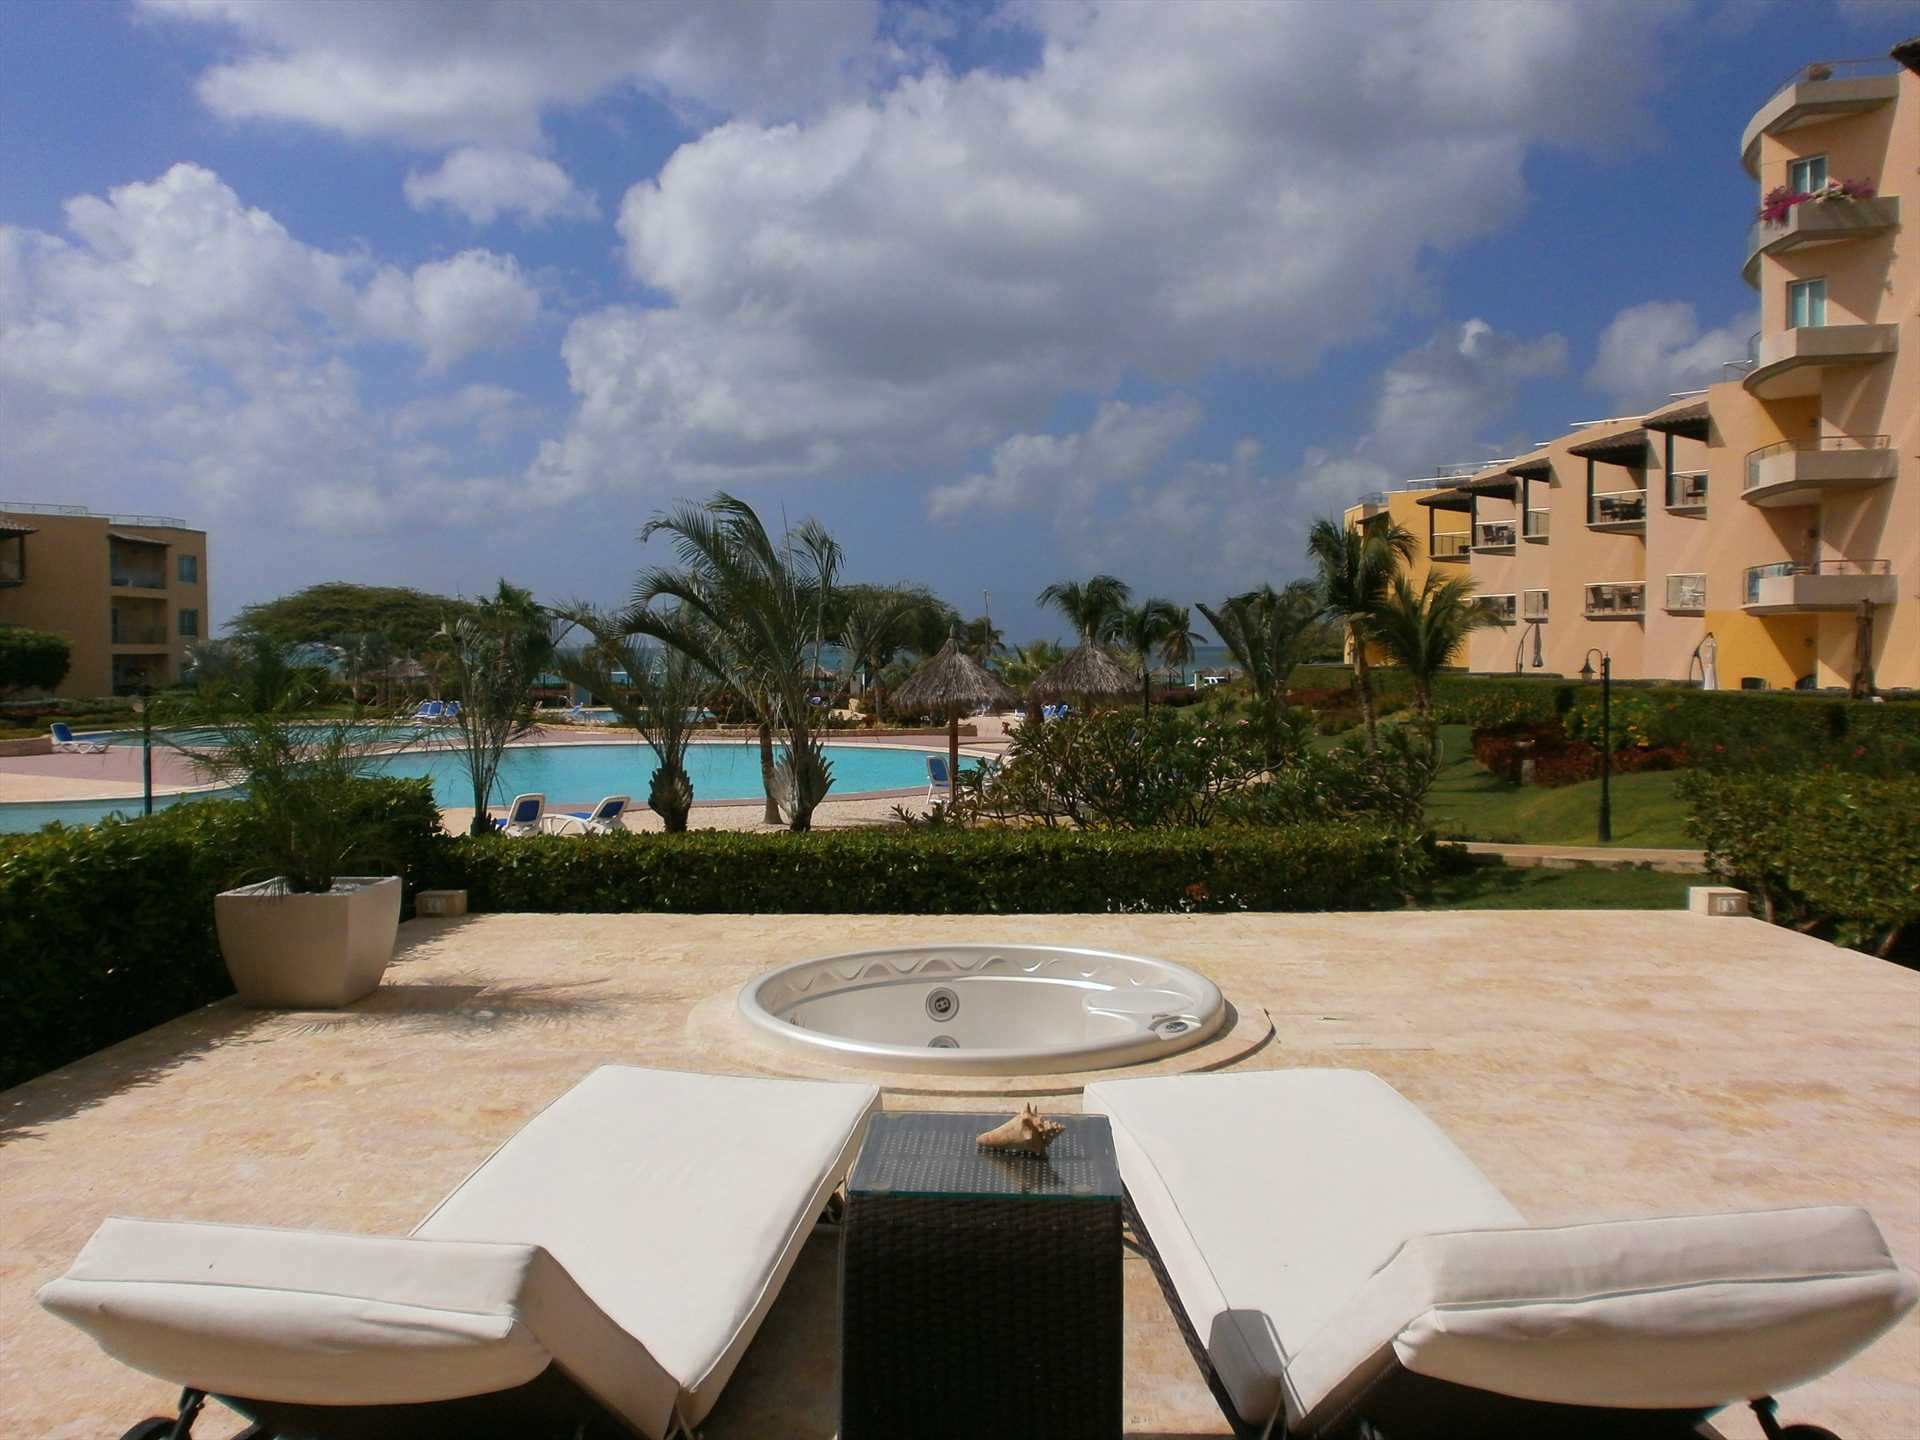 Relax in the lounge chairs while enjoying the Aruban weather!